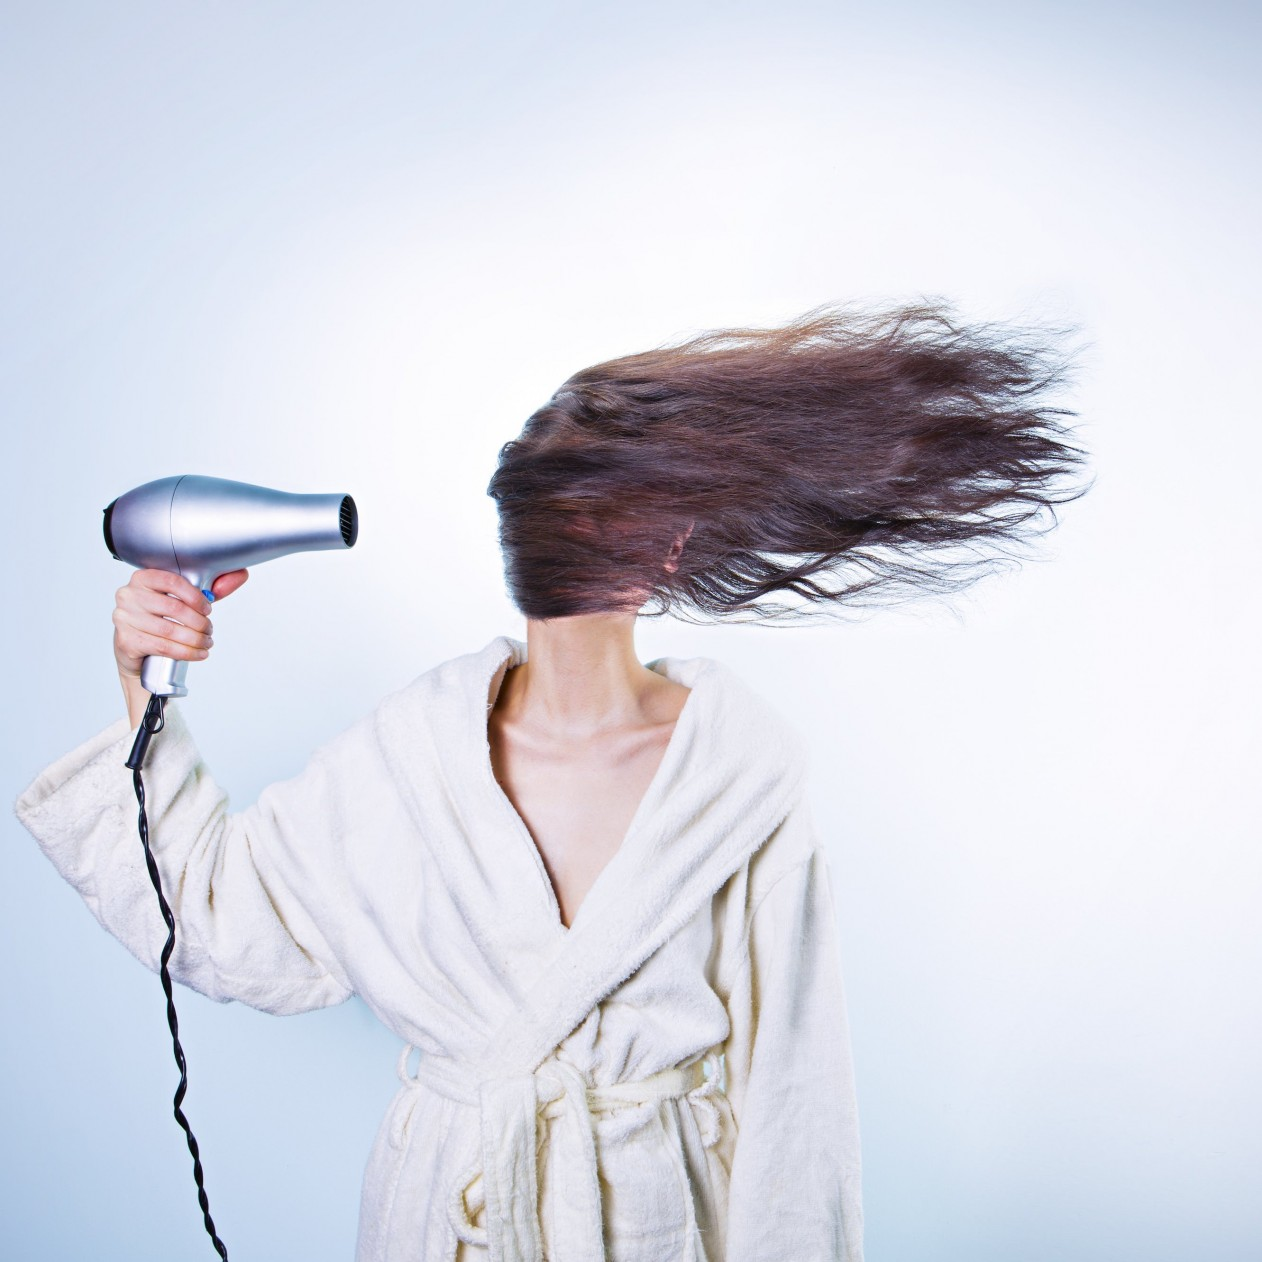 Powerful Hair Dryer Wallpaper for Apple iPad mini